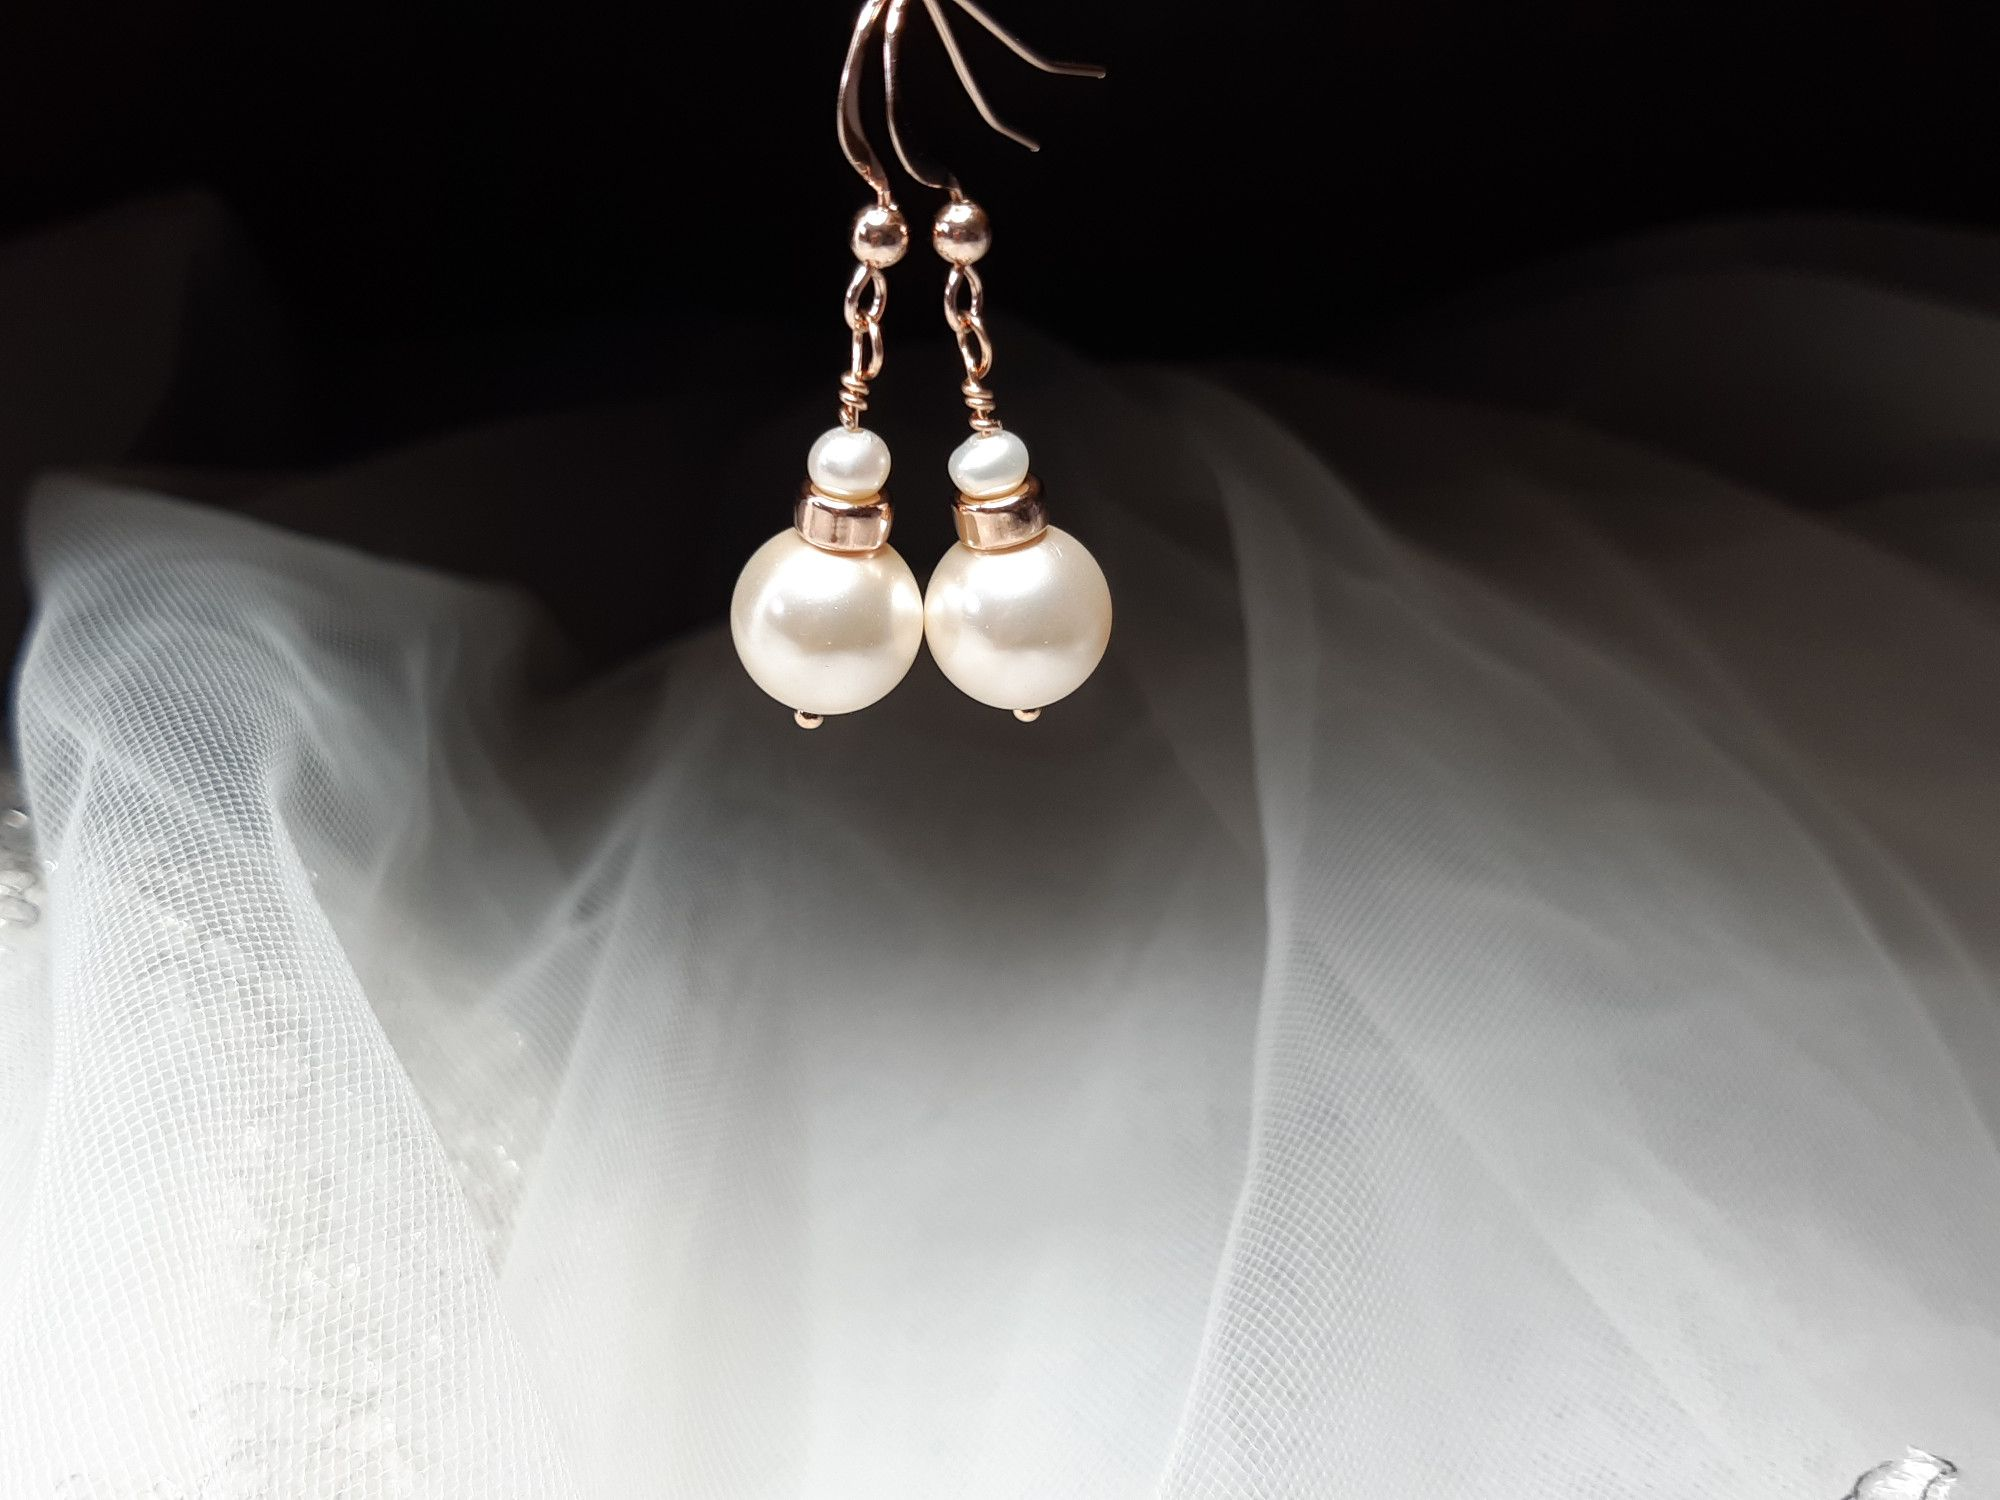 Occasion-bridal-wedding-pearl earrings with rose gold-6